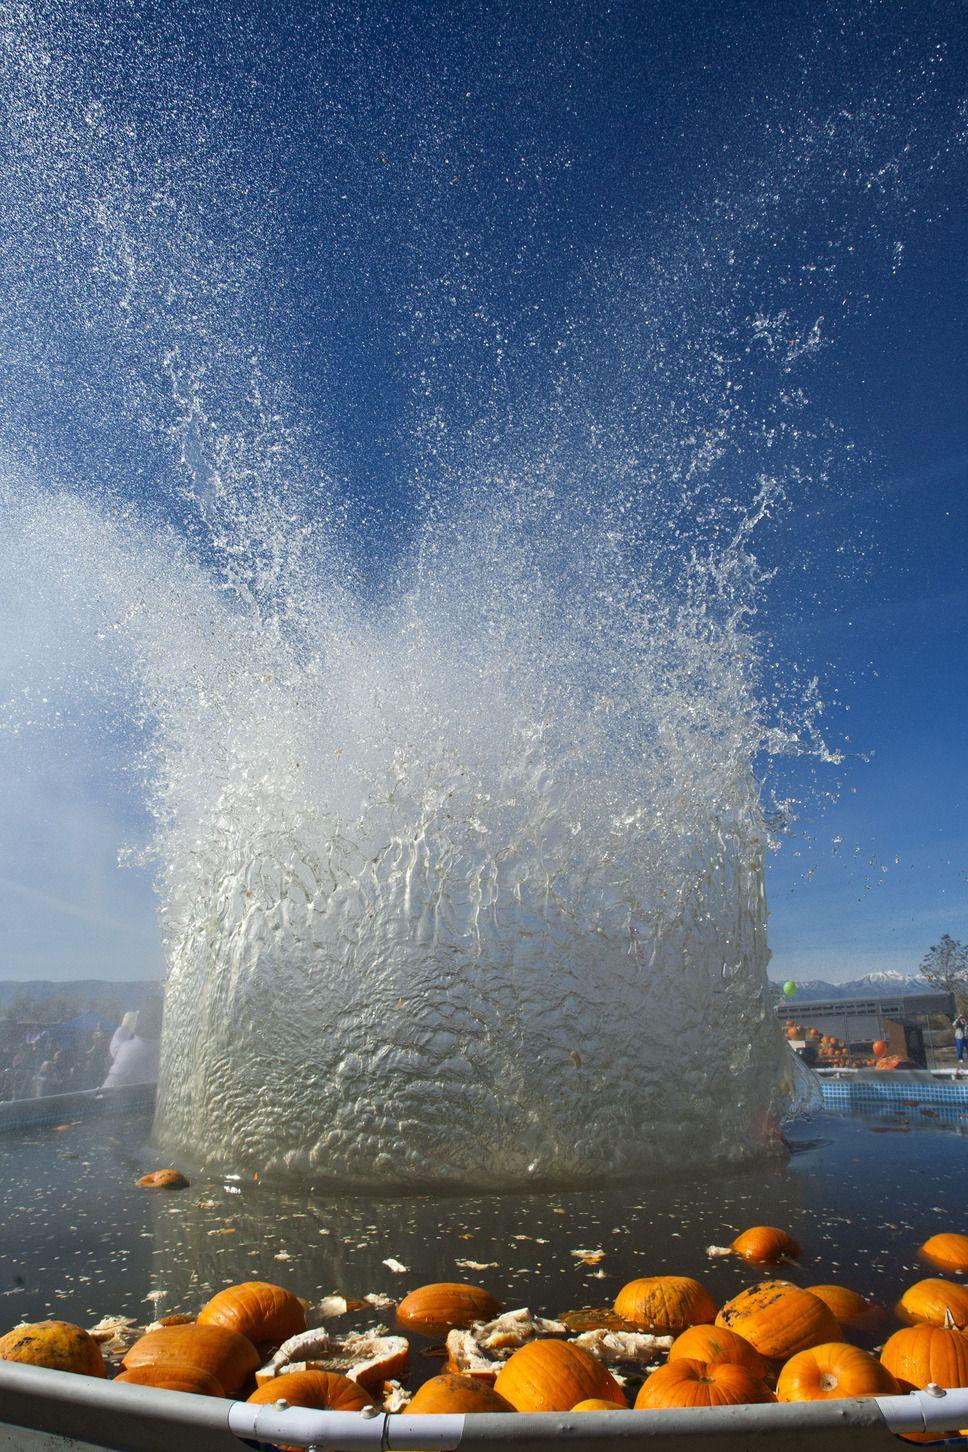 A 450 Pound Pumpkin Is Dropped Into A Swimming Pool From A Height Of 150 Feet During Utah S 4th Annual Ginormous Pumpkin Drop At Hee Lake Utah Pleasant Grove